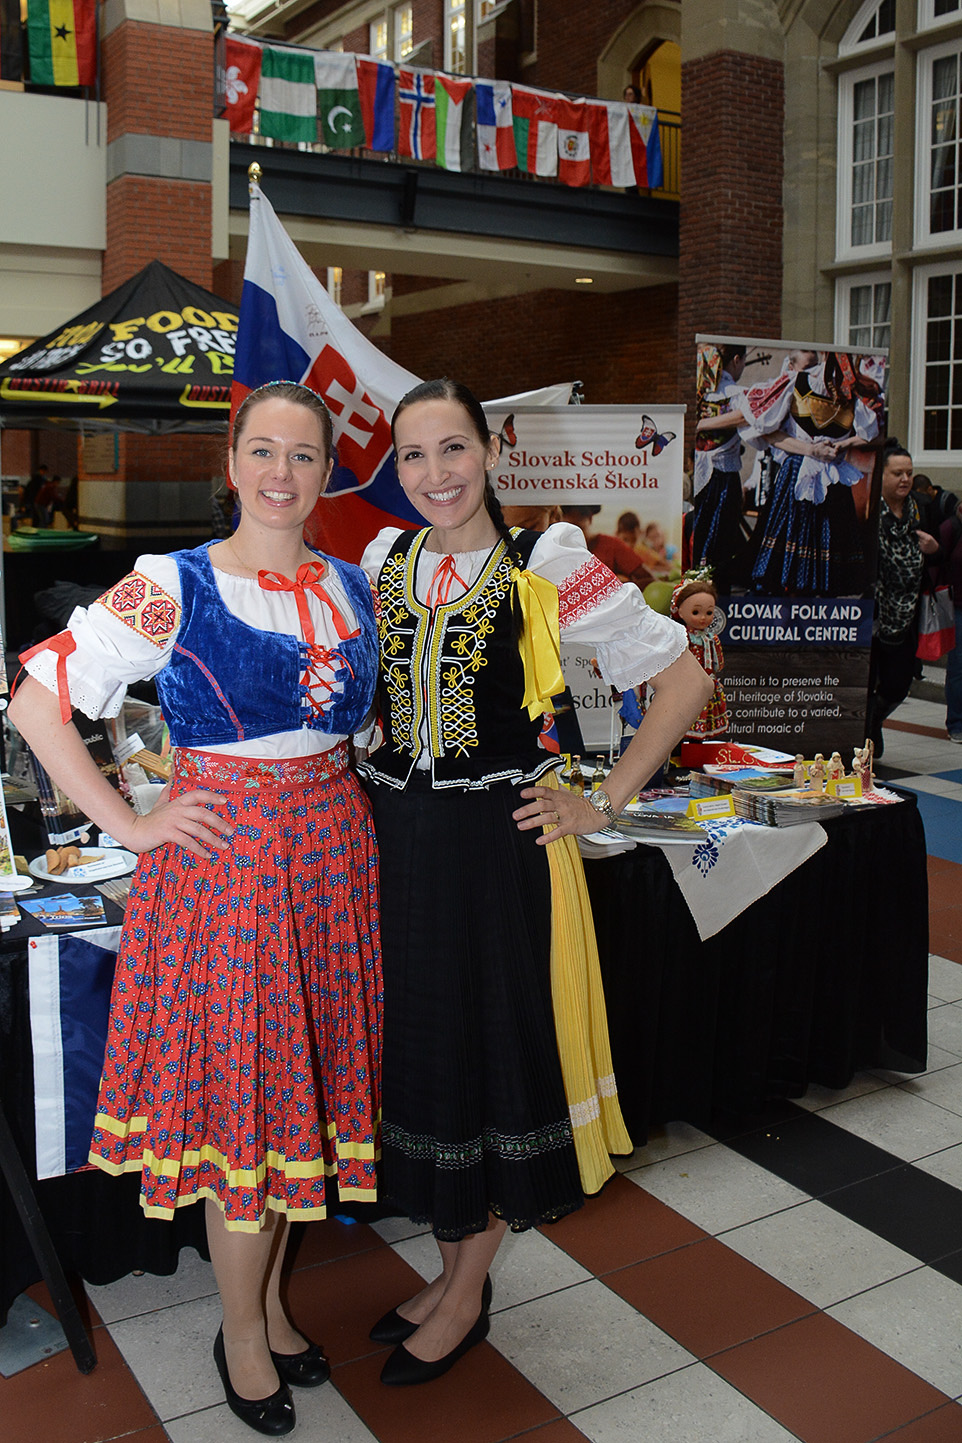 Czech-Slovak relations: Monica Heczkova and Veronica Gruszkova wear traditional outfits from their countries as they stand in front of their country's information booth in the Stan Grad building during International Education week at SAIT on Tuesday, Nov. 15. (Photo by Sean Gallagher-LeGouff SAIT Polytechnic)